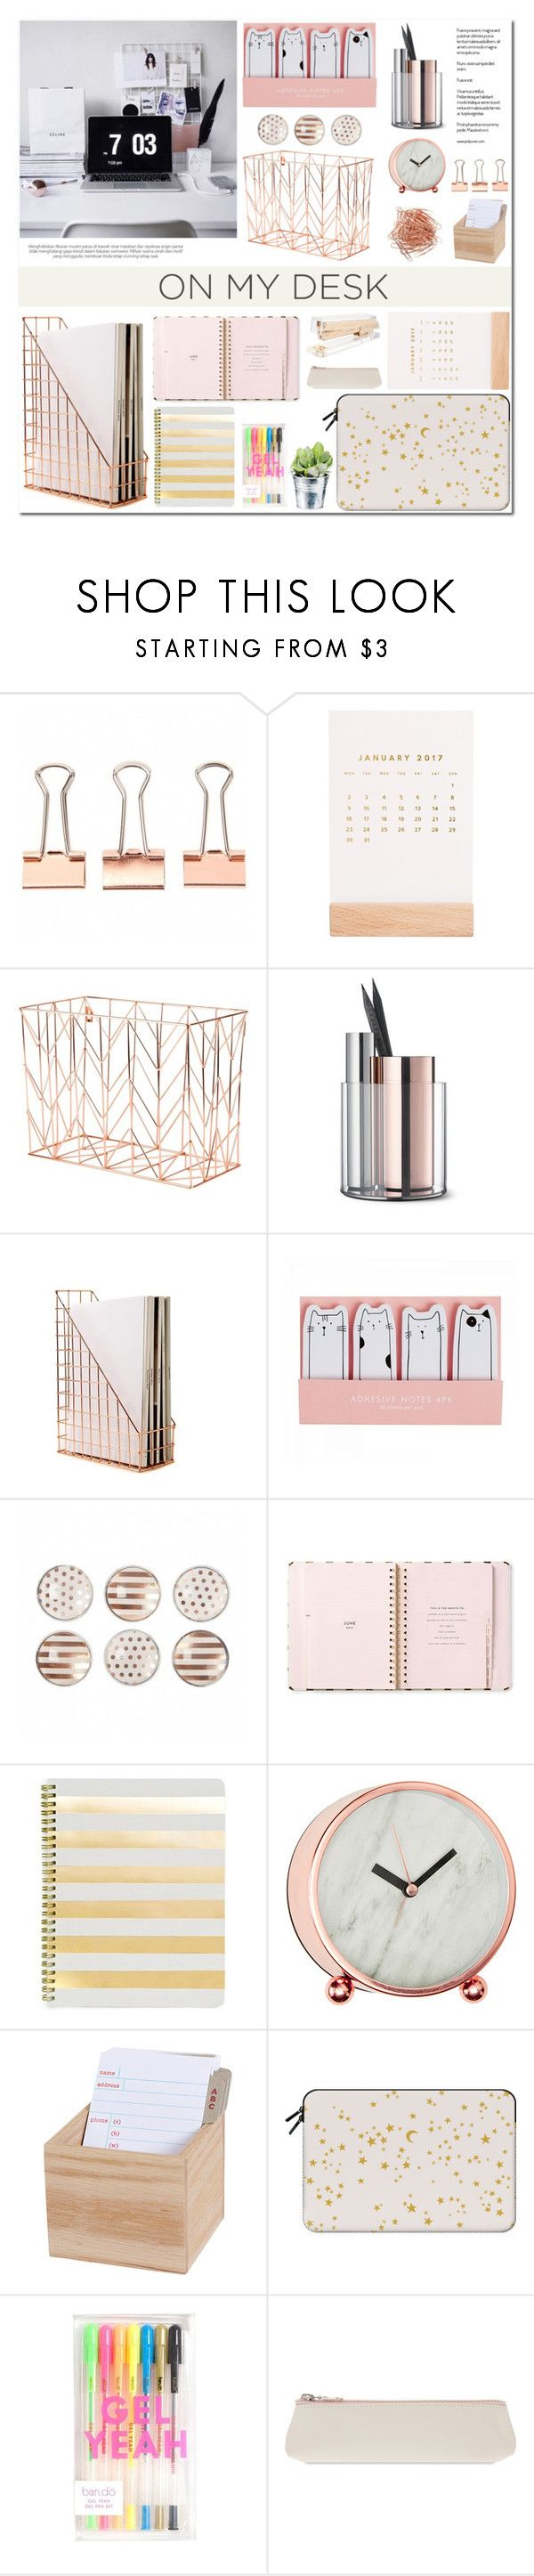 """""""On My Desk"""" by makeupgoddess ❤ liked on Polyvore featuring interior, interiors, interior design, home, home decor, interior decorating, Thrive, U Brands, Kate Spade and Beyond Object"""